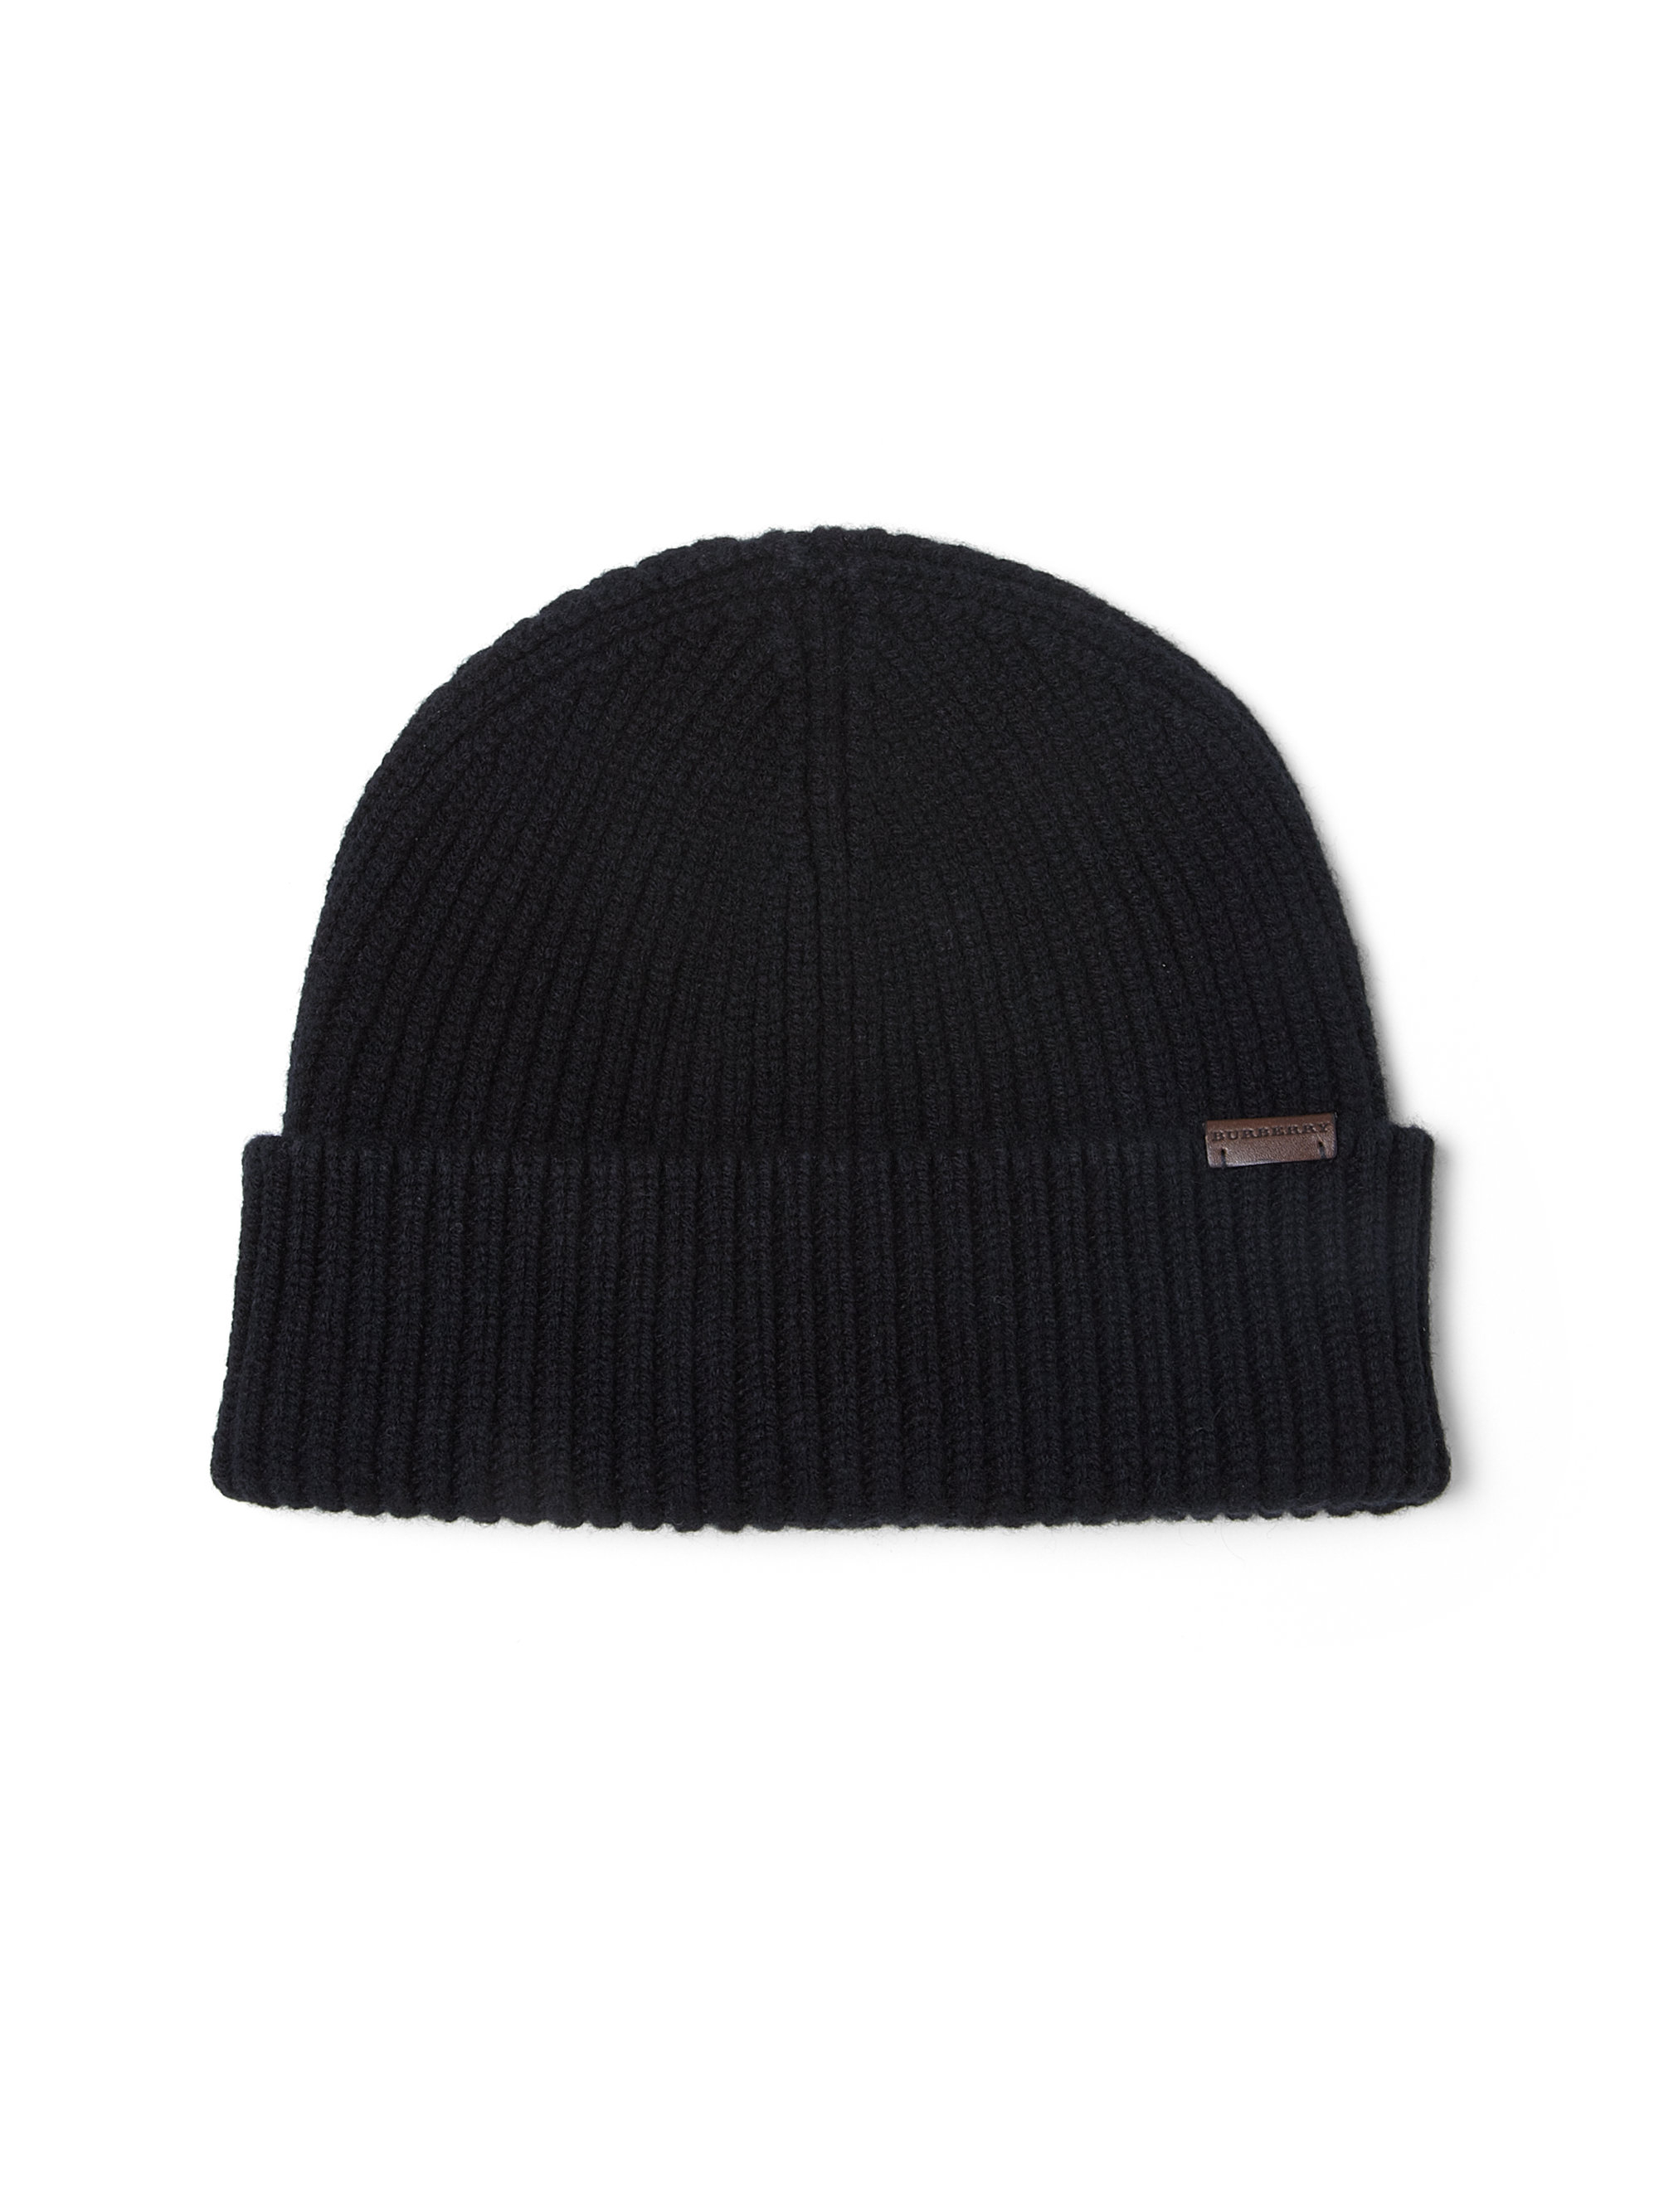 7cd53102a54 Lyst - Burberry Wool   Cashmere Beanie Hat in Black for Men